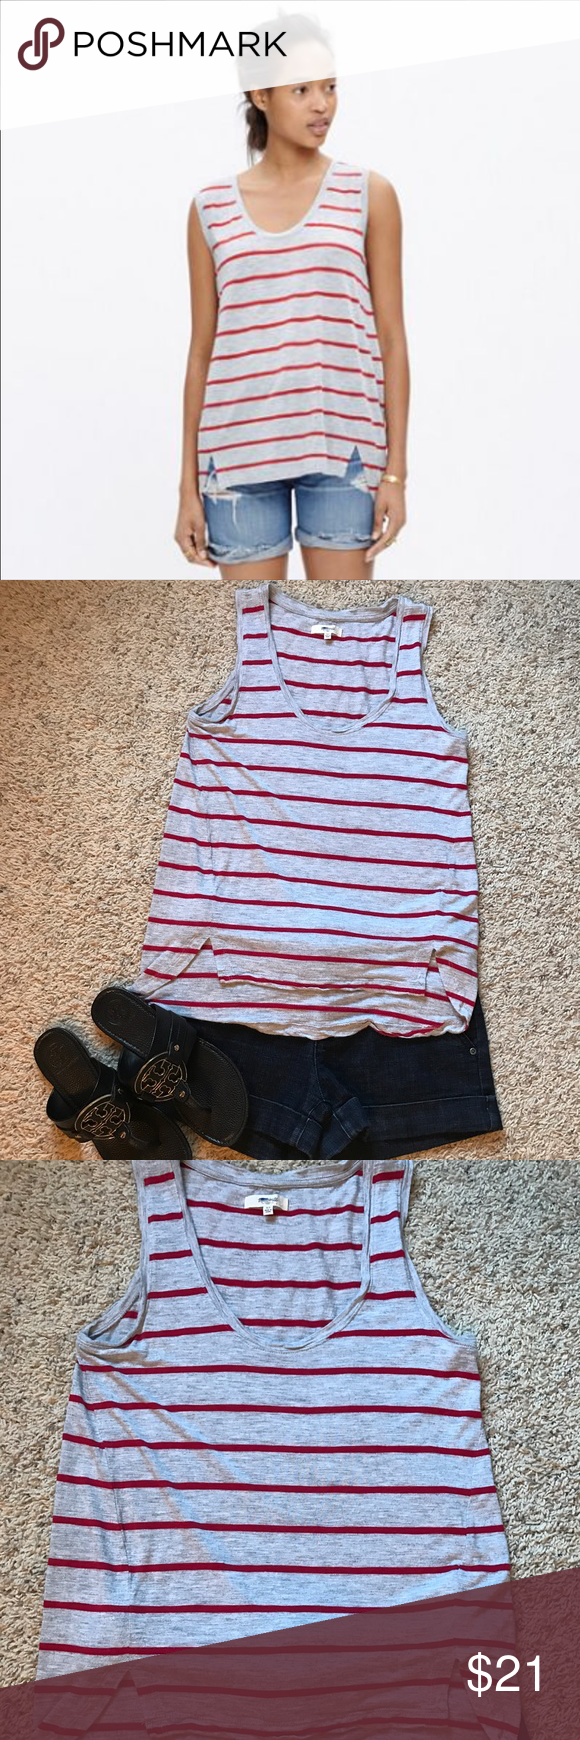 """NWT MADEWELL Anthem Tank in Stripe Size XS NWT MADEWELL Anthem Tank in Stripe  Size: XS Color: Gray and Red Style: C7306 Retail: $42  Measurements:  Bust: 17"""" Length:  22 1/2"""" front 26"""" in back.   Madewell Description:   """"Laid-back and undeniably flattering, this scoopneck tank top has a fresh longer-in-back shirttail hem. Crafted of our signature Anthem fabric—the one with that extra-soft feel and perfect drape—this is one tank we can't help but hit replay on.""""  Drapey fit. Viscose. Hand…"""